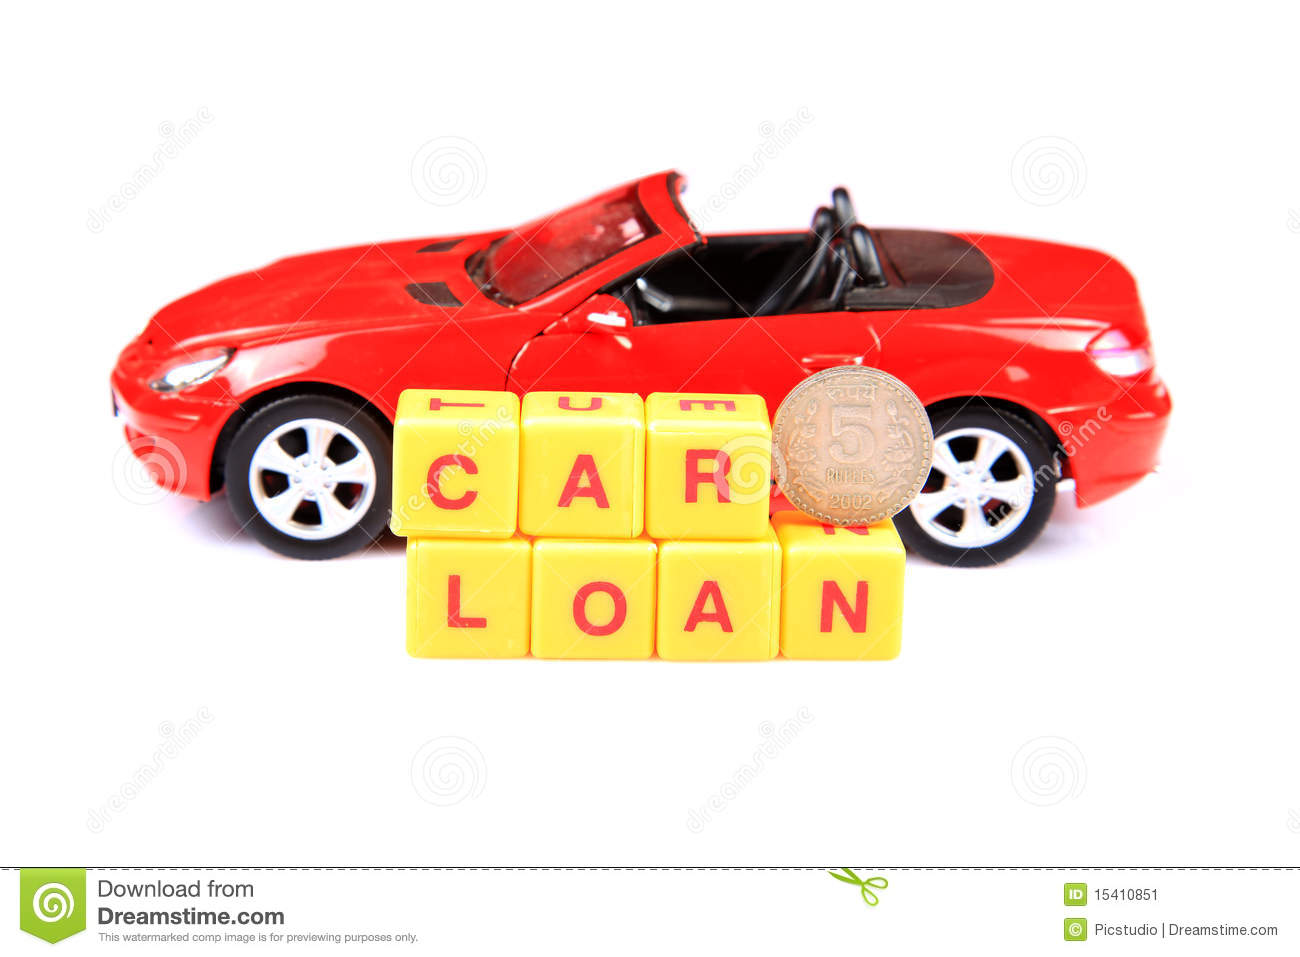 Gmac Auto Loans >> You should probably know this: Capital One Auto Loan ...